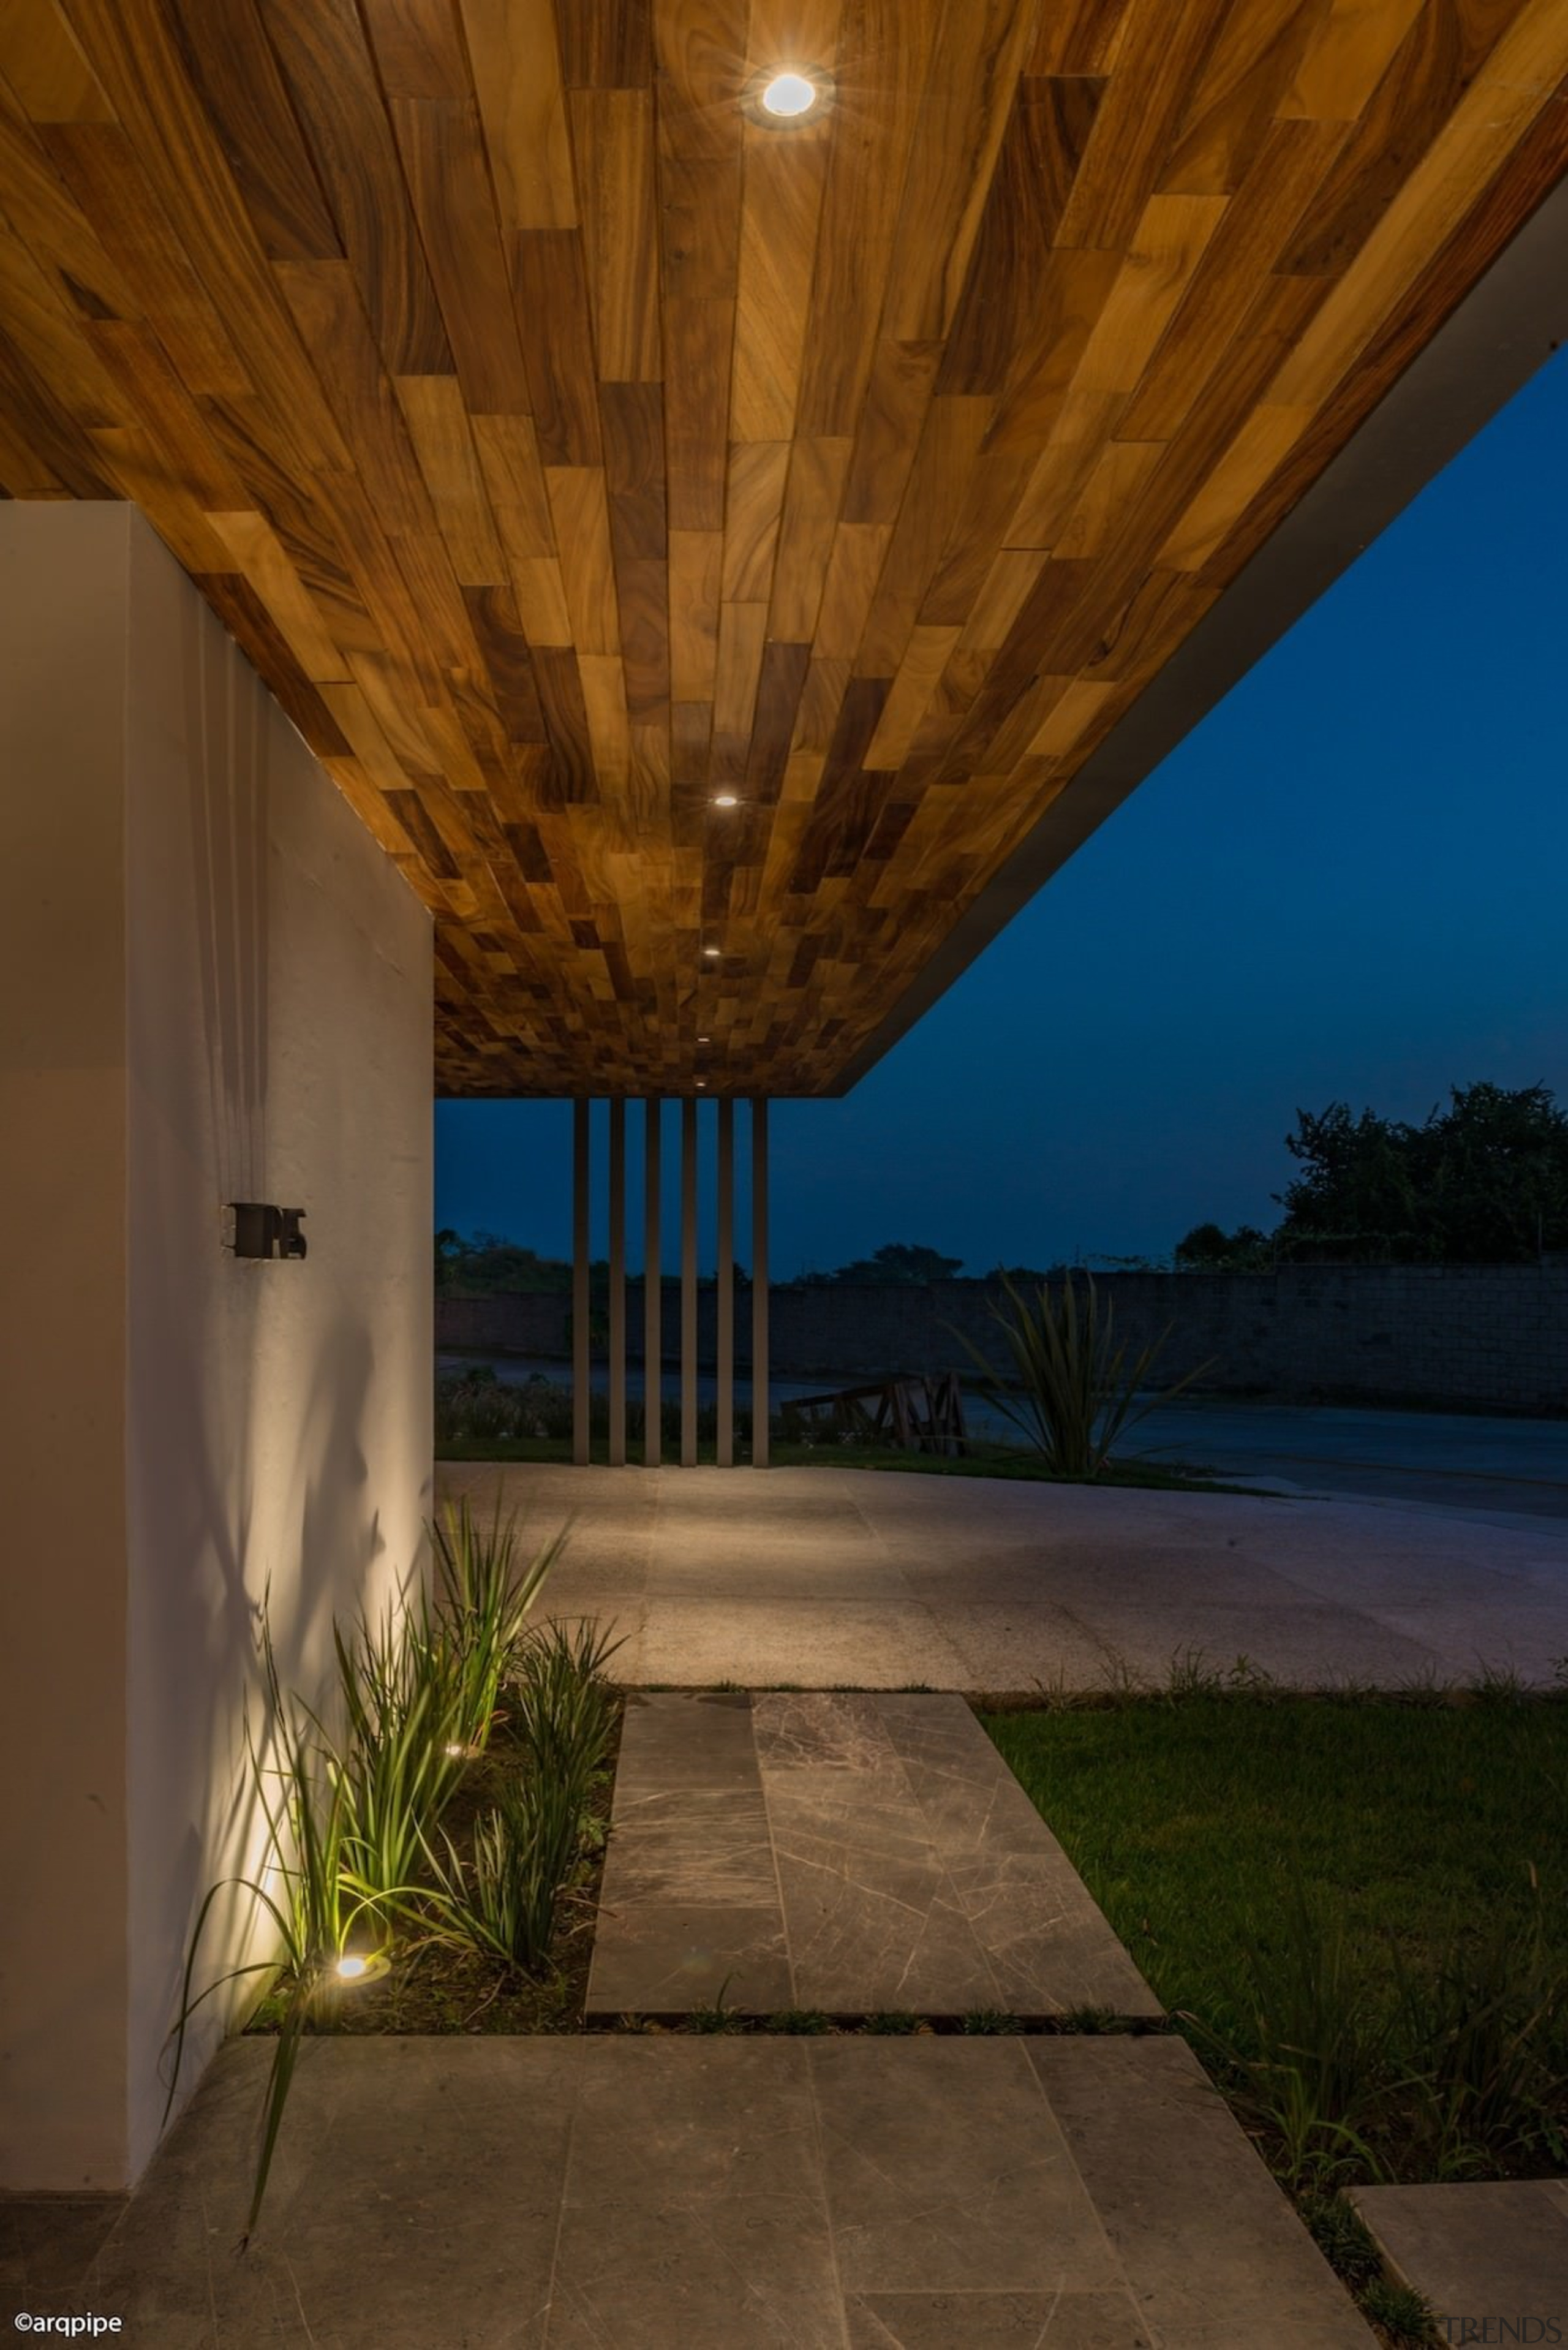 Colima home/Di Frenna Arquitectos - Colima home/Di Frenna architecture, ceiling, daylighting, estate, home, house, interior design, lighting, property, real estate, reflection, sky, wall, wood, brown